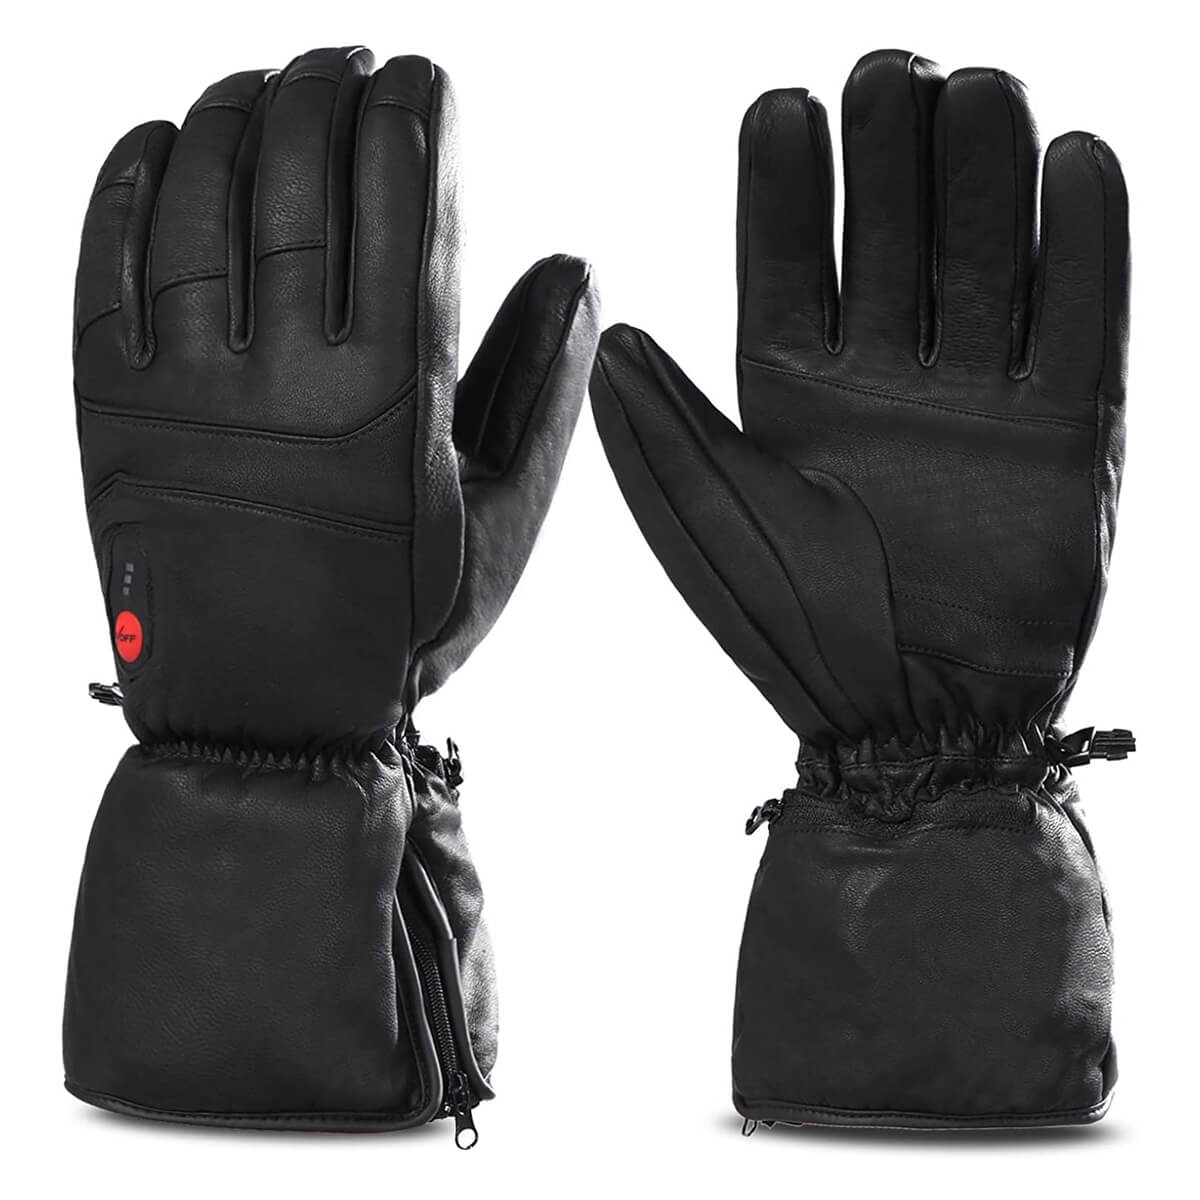 Savior Heated Rechargeable Gloves for Men and Women